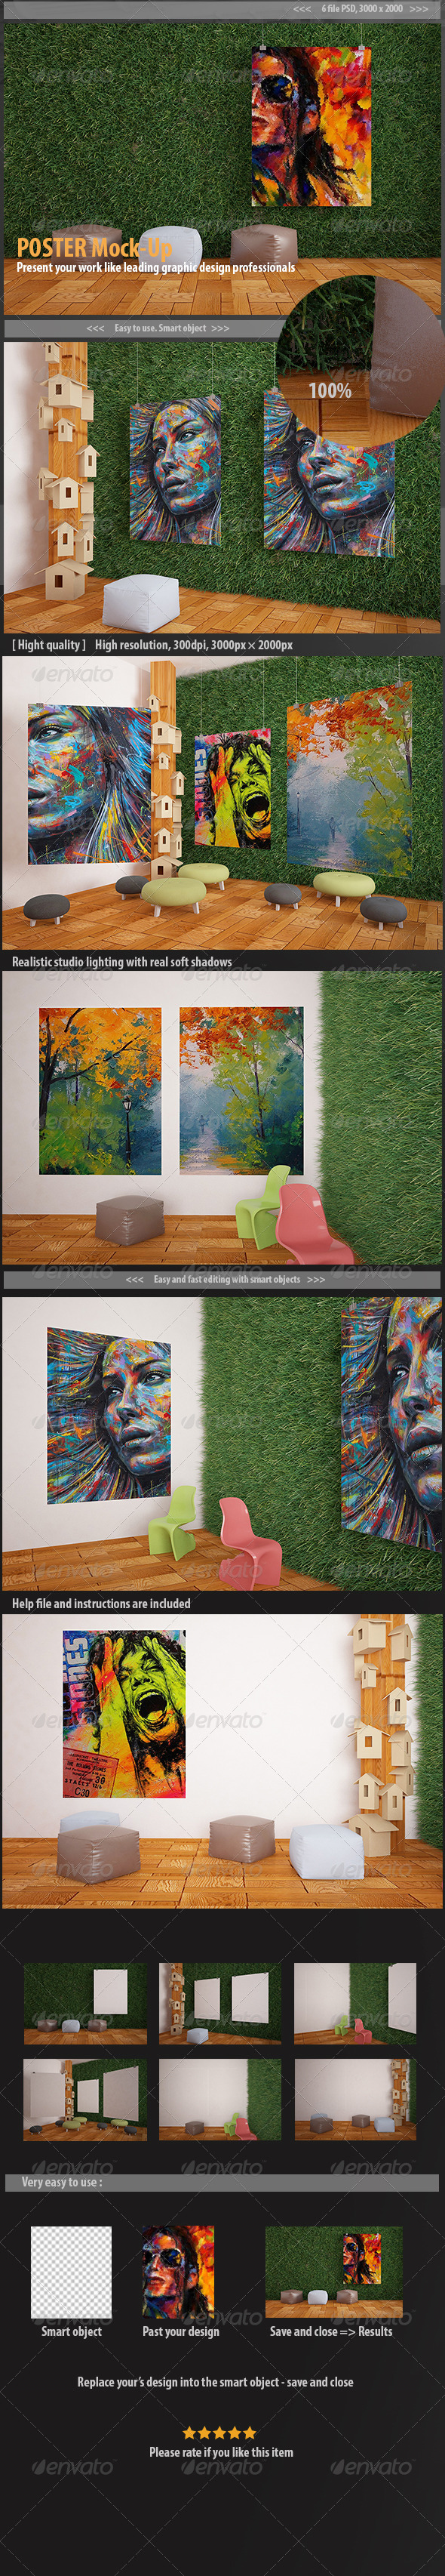 GraphicRiver Poster Mockups 7068802